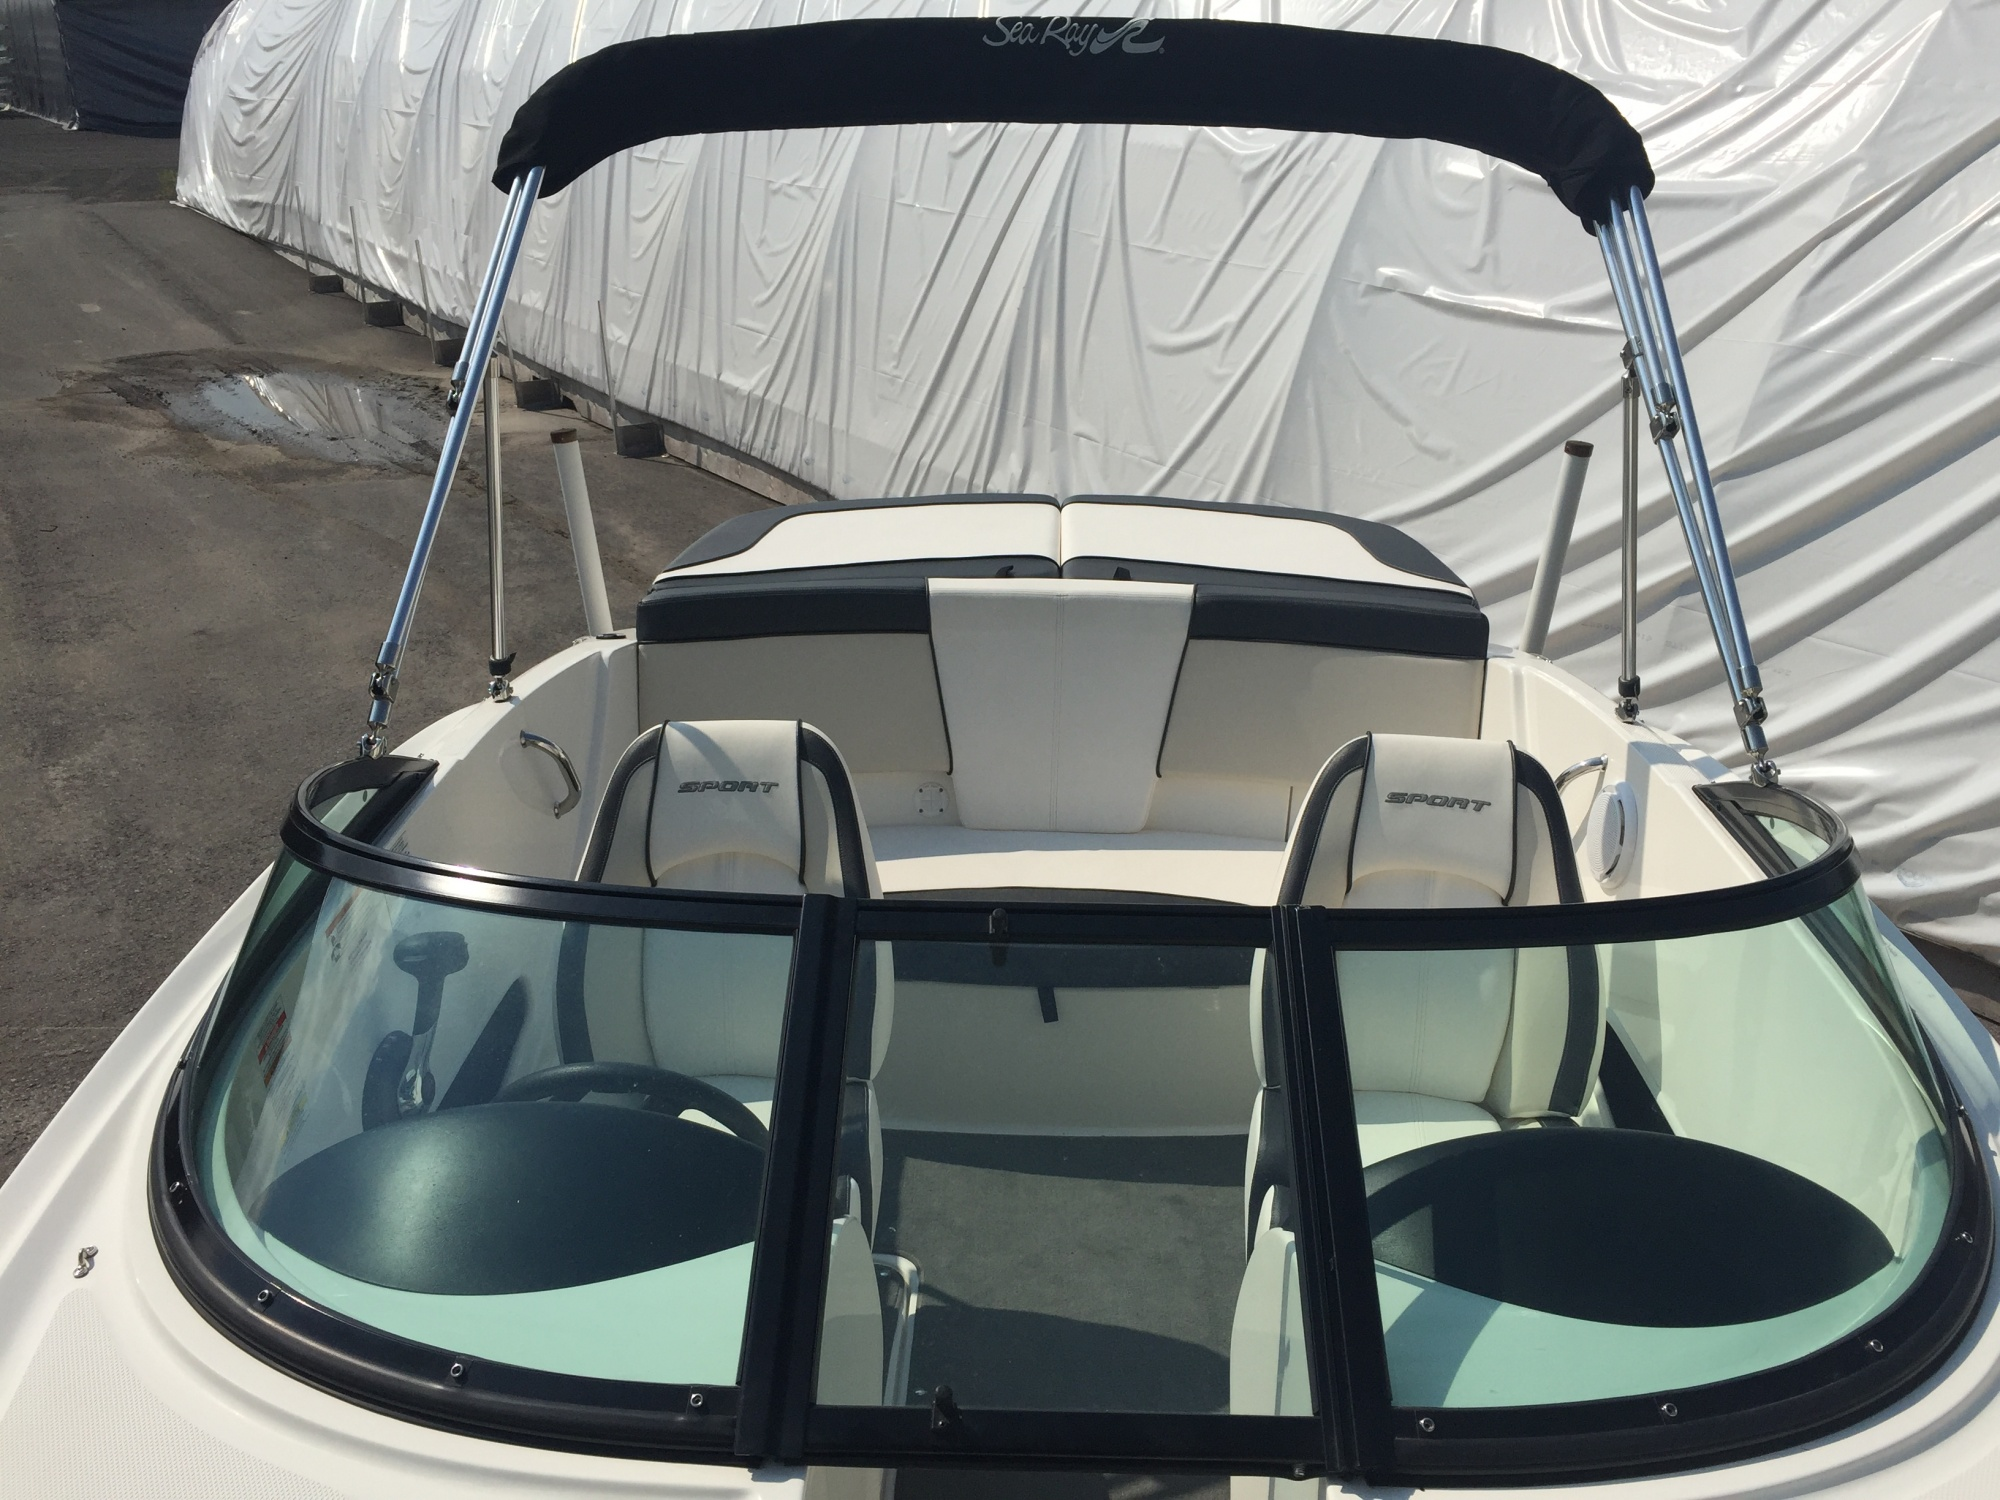 Sea Ray 185 SP SRV34 - STOCK 26147-A Bateau Sea ray 2012 Blanc (12)